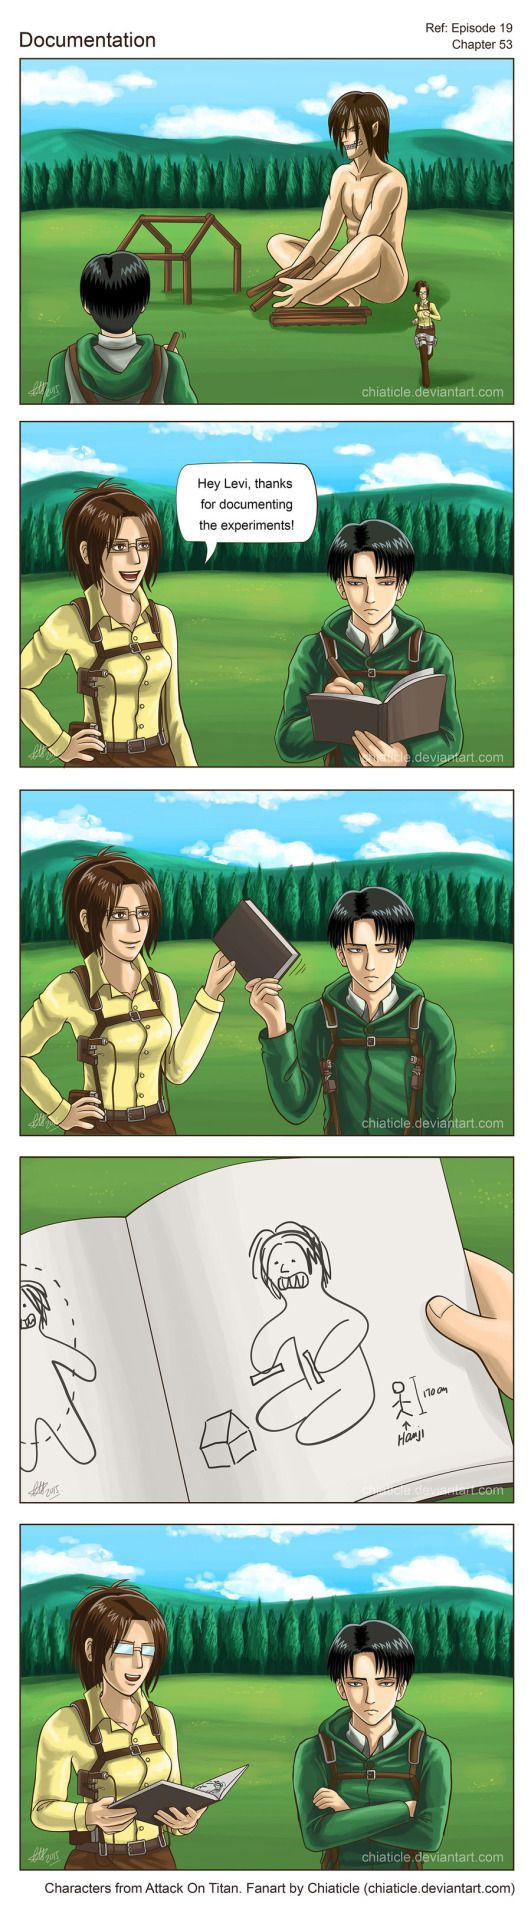 AOT: Documentation by Chiaticle, for some reason, IM LAUGHING LIKE CRAZY XD